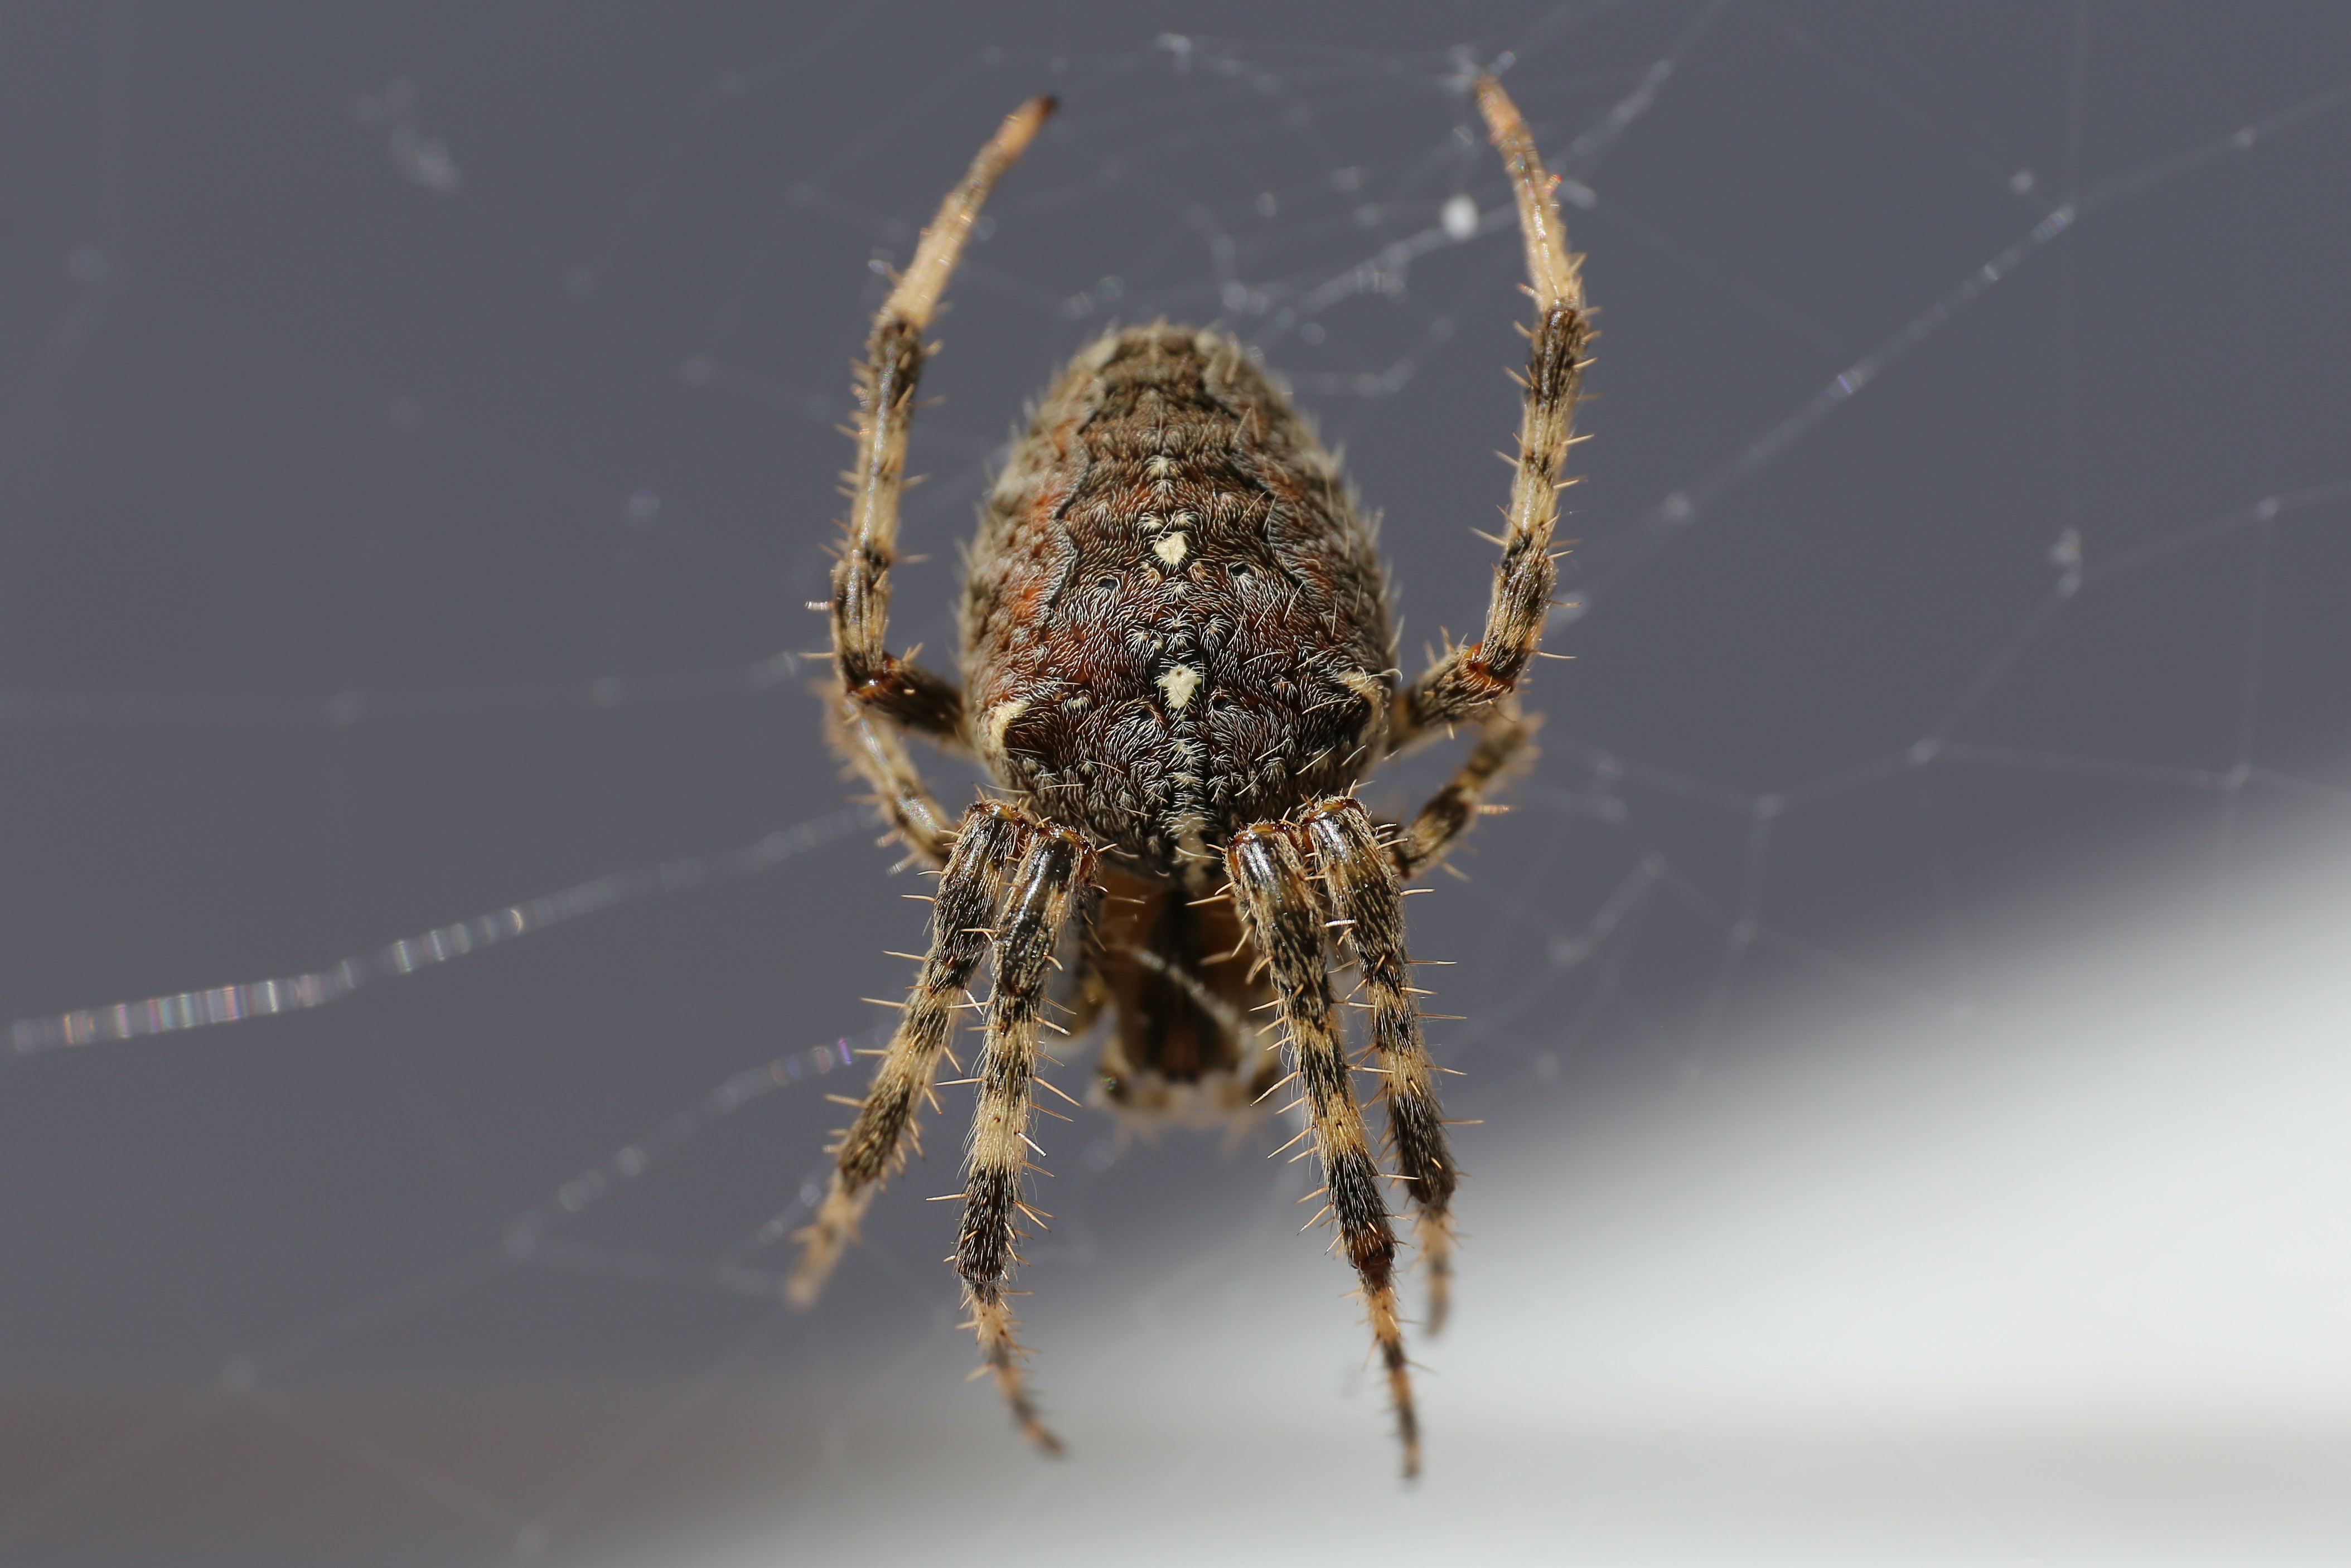 closeup photo of brown spider on web